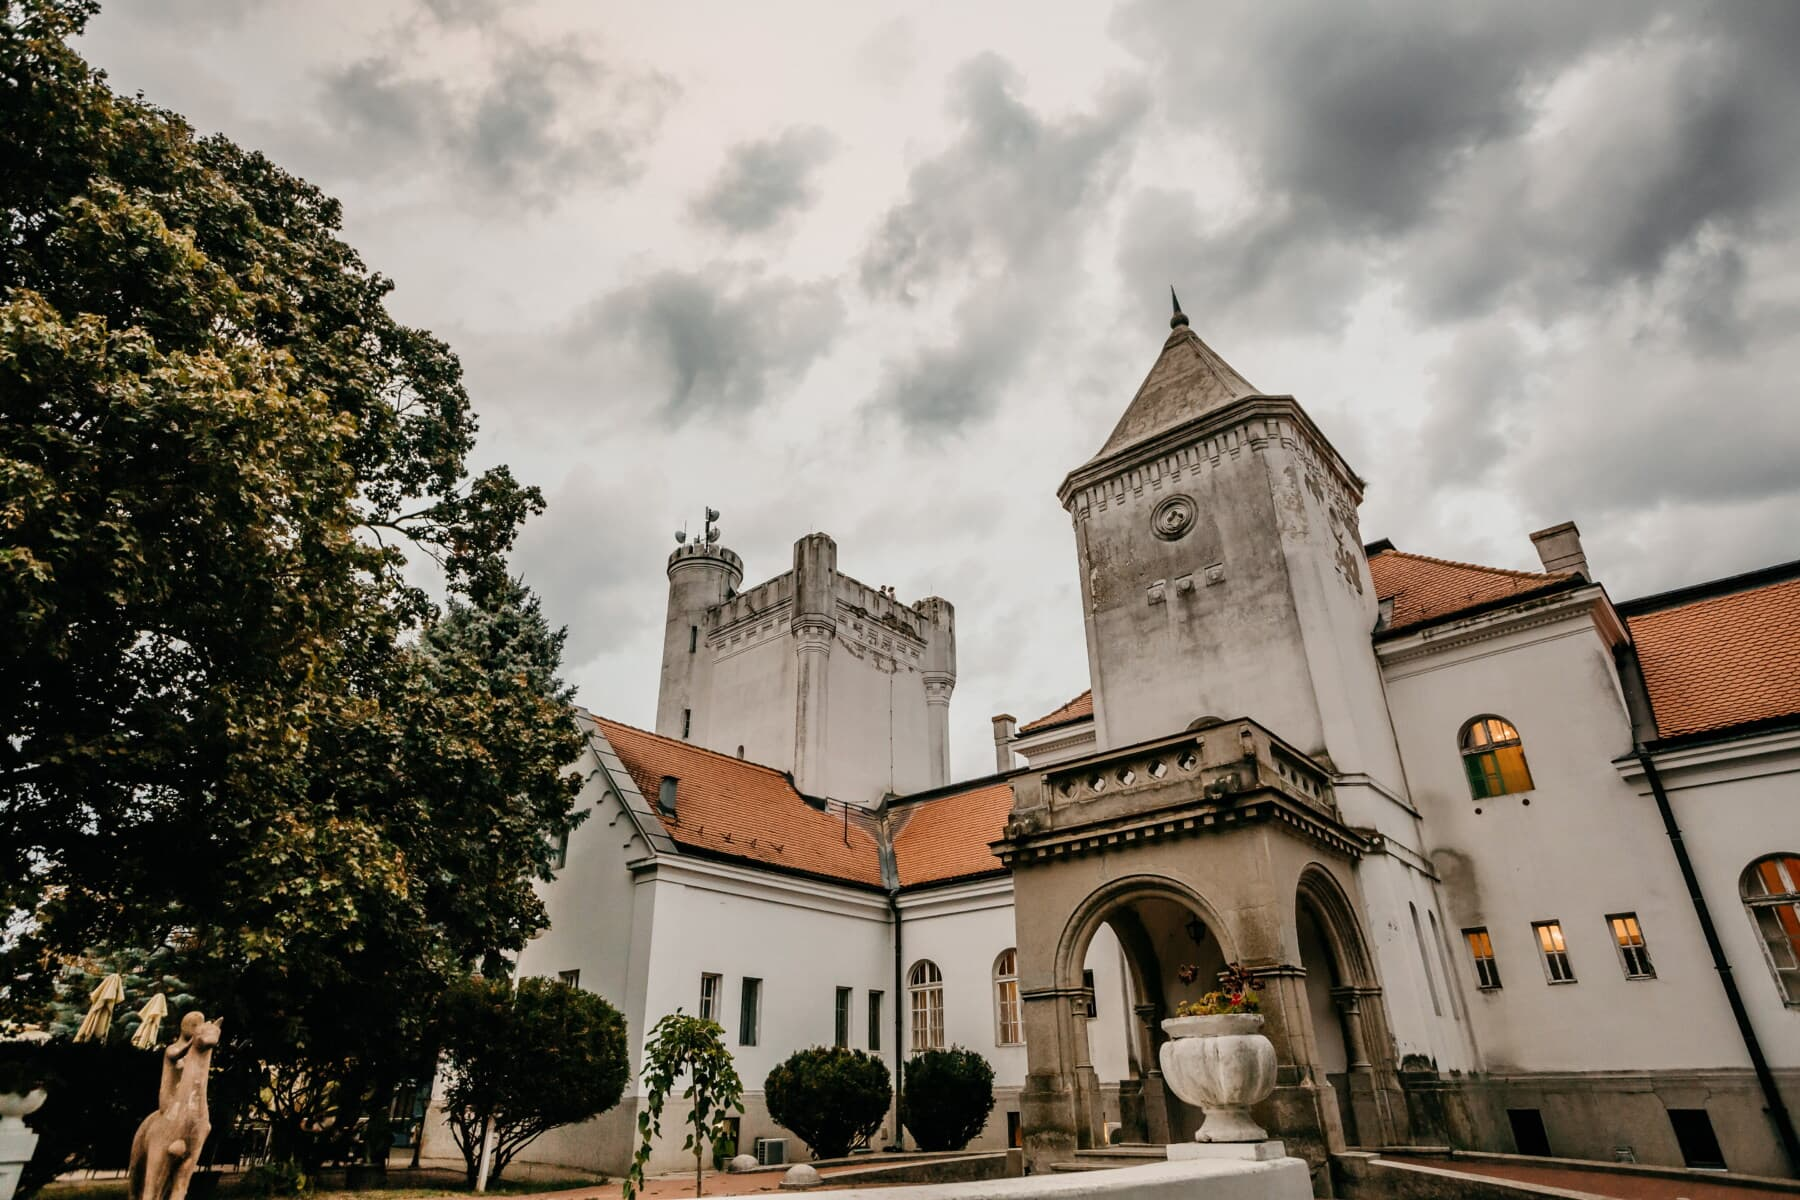 castle, sculpture, backyard, residence, architecture, building, palace, tower, old, street